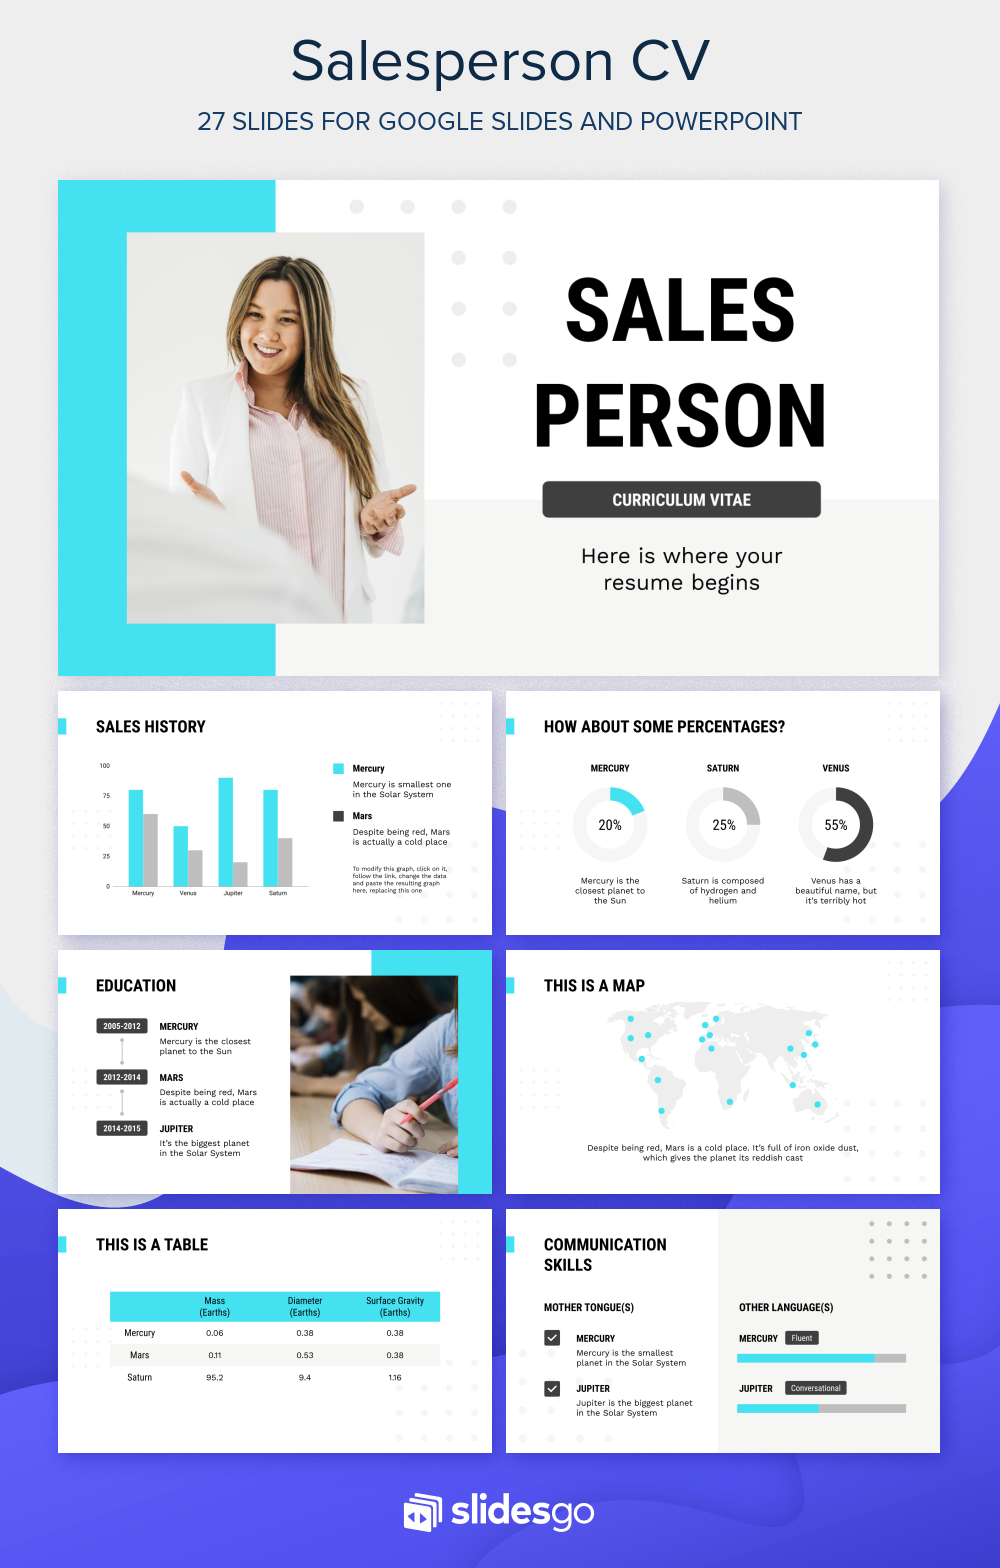 Present Your Resume With This Professional Salesperson Curriculum Template For Google Slides And Powerpoint Google Slides Themes Curriculum Template Powerpoint